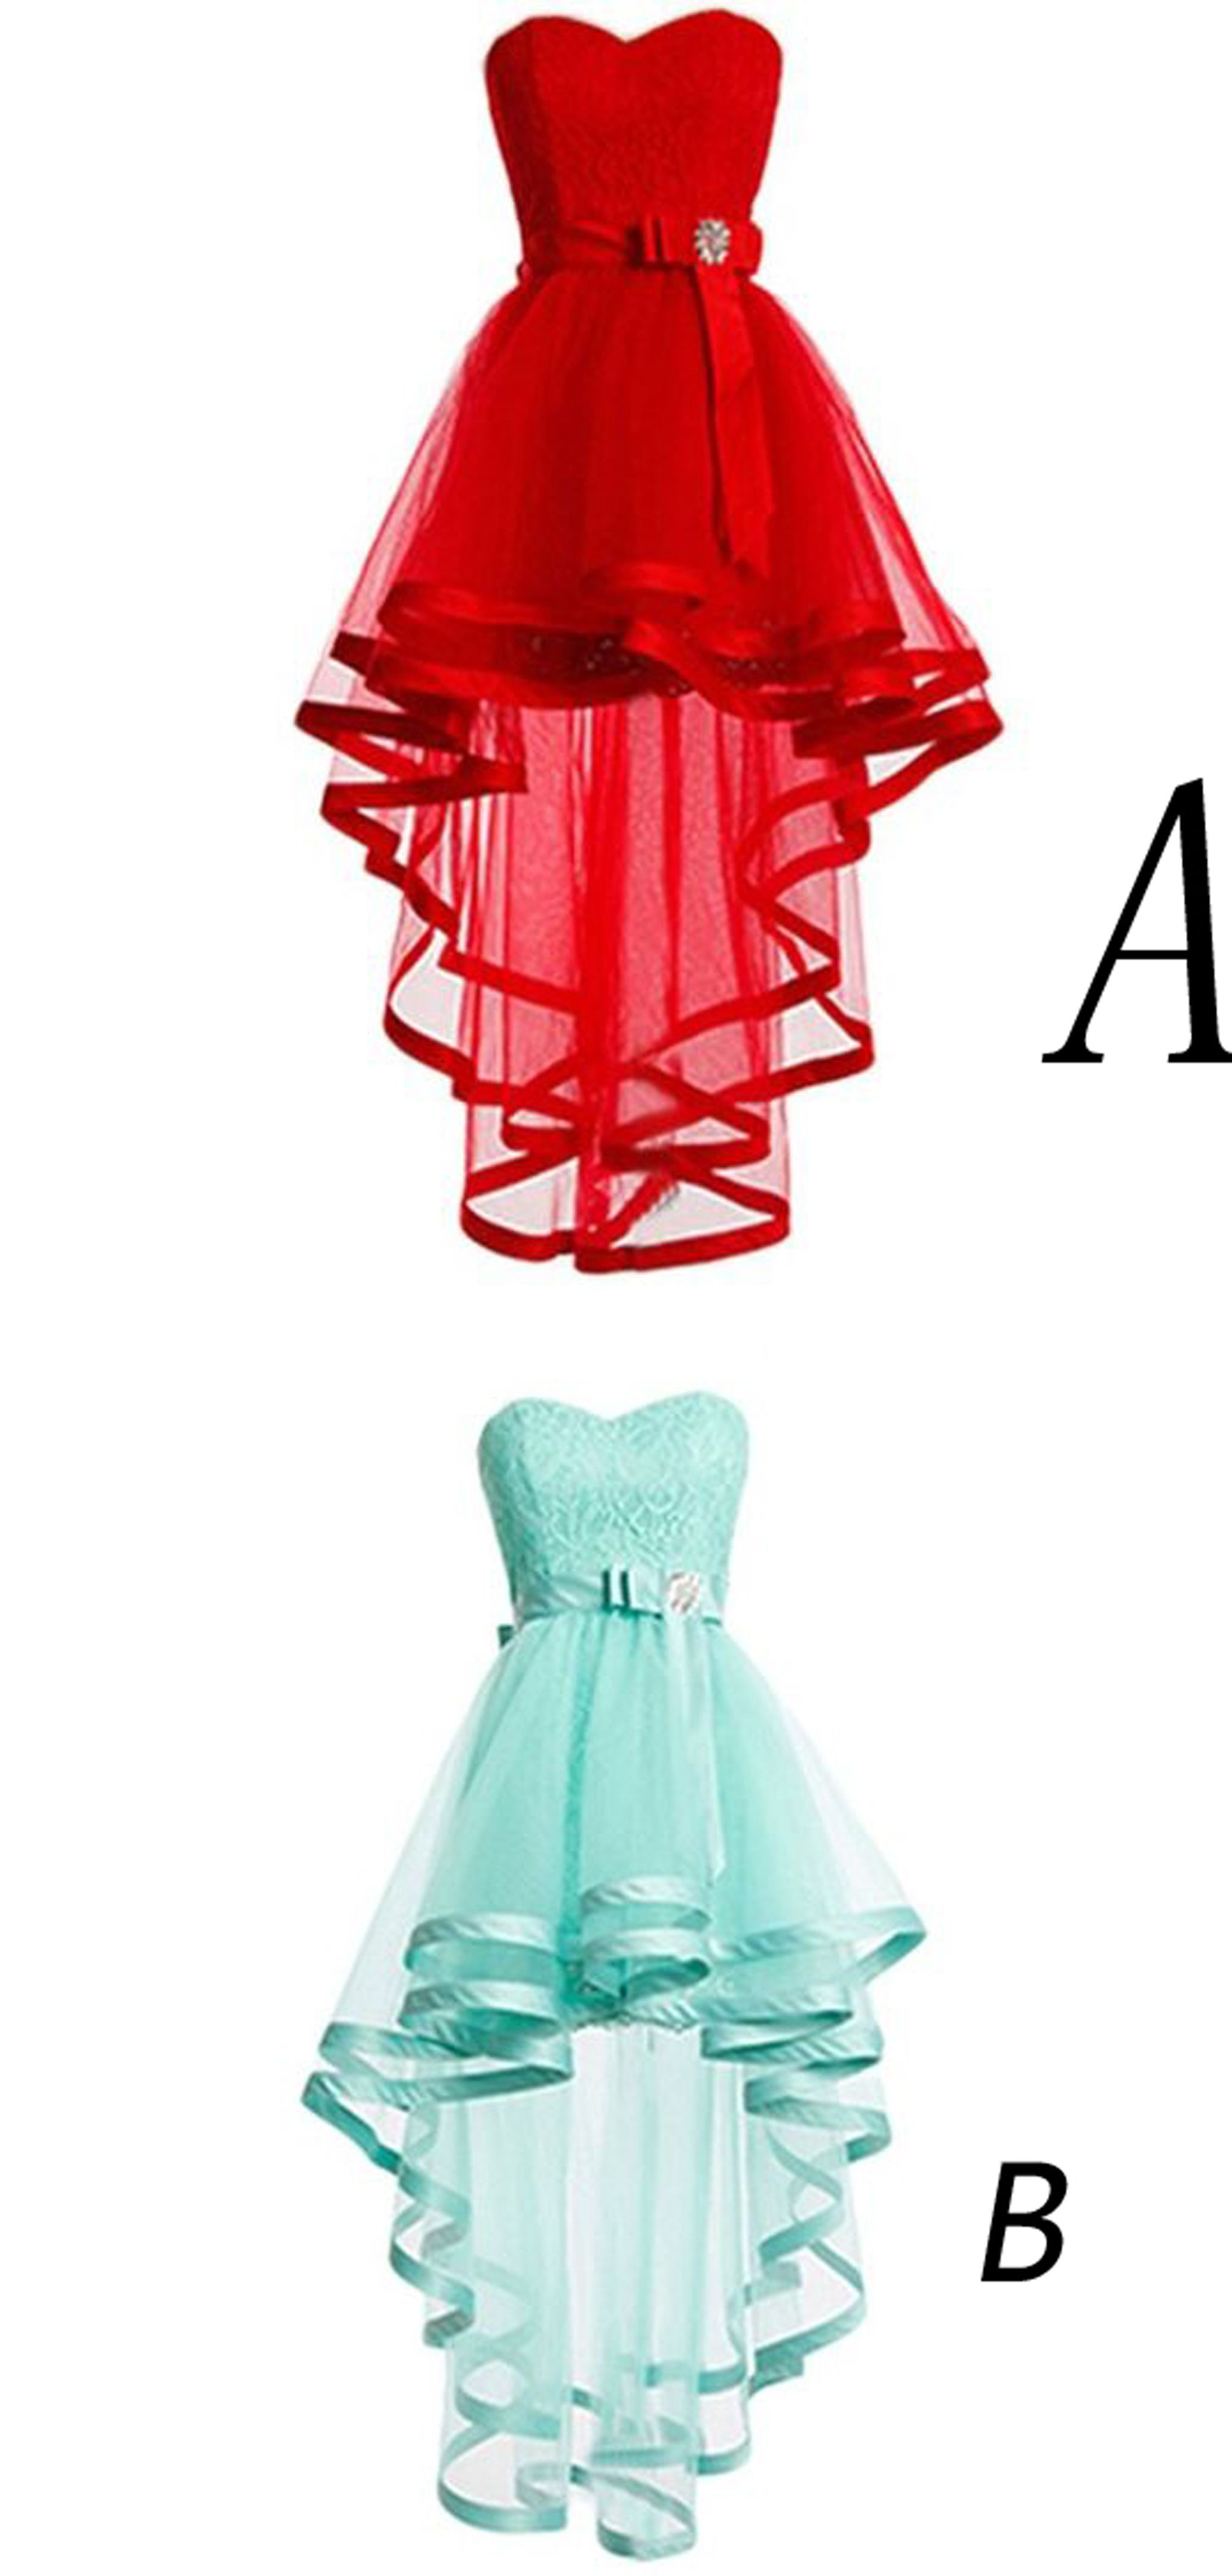 High Low Homecoming Dresses Mint Homecoming Gowns Sweet 16 Dress Plus Size Evening Dresses For Teens Short Mini Prom Dresses Homecoming Dress Hg89 Dresses For Teens Sweet 16 Dresses Mini Prom Dresses [ 4279 x 2046 Pixel ]